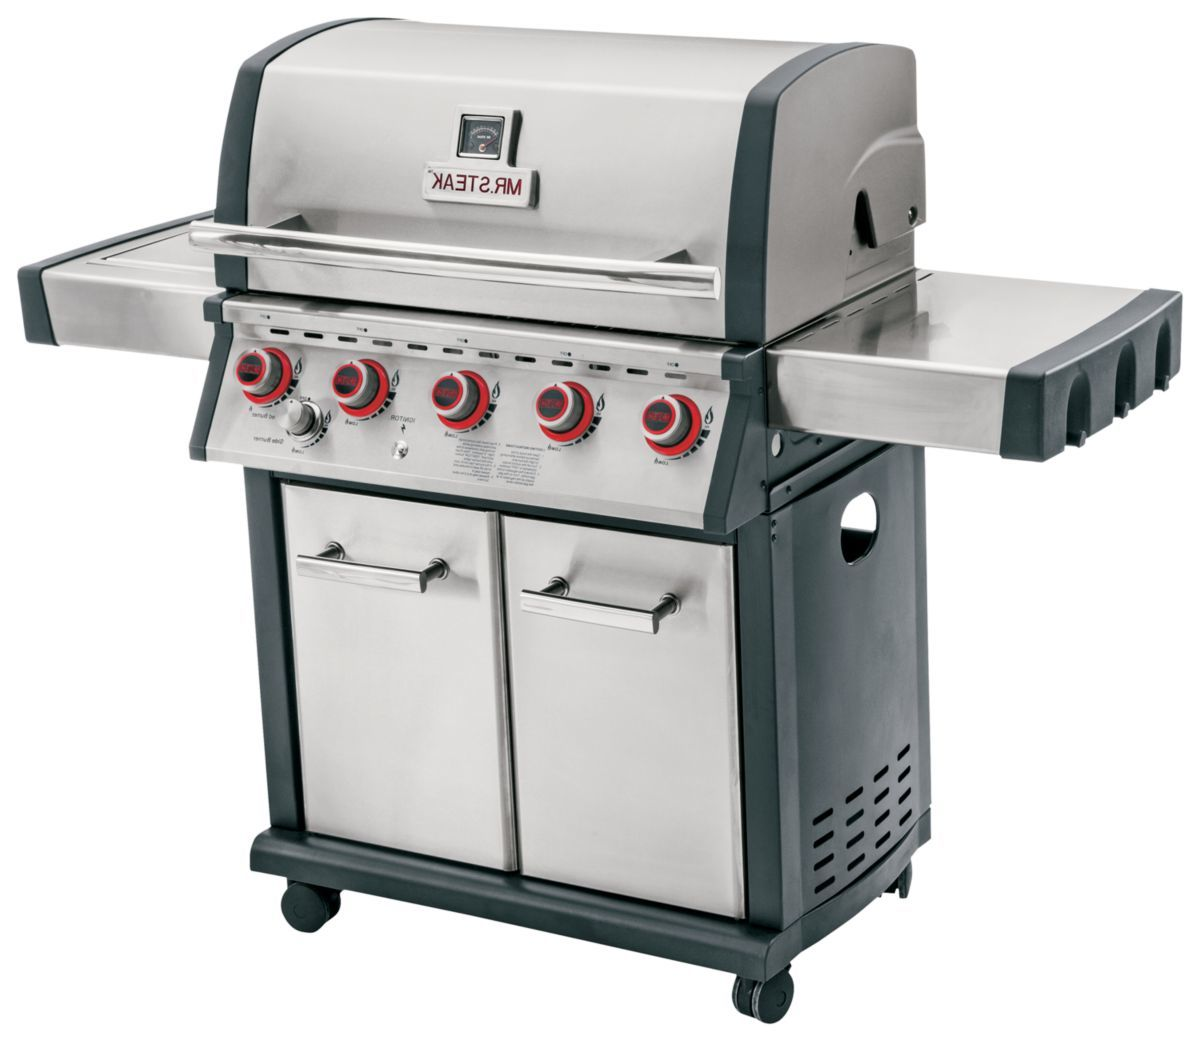 Mr. Steak Propane Grills